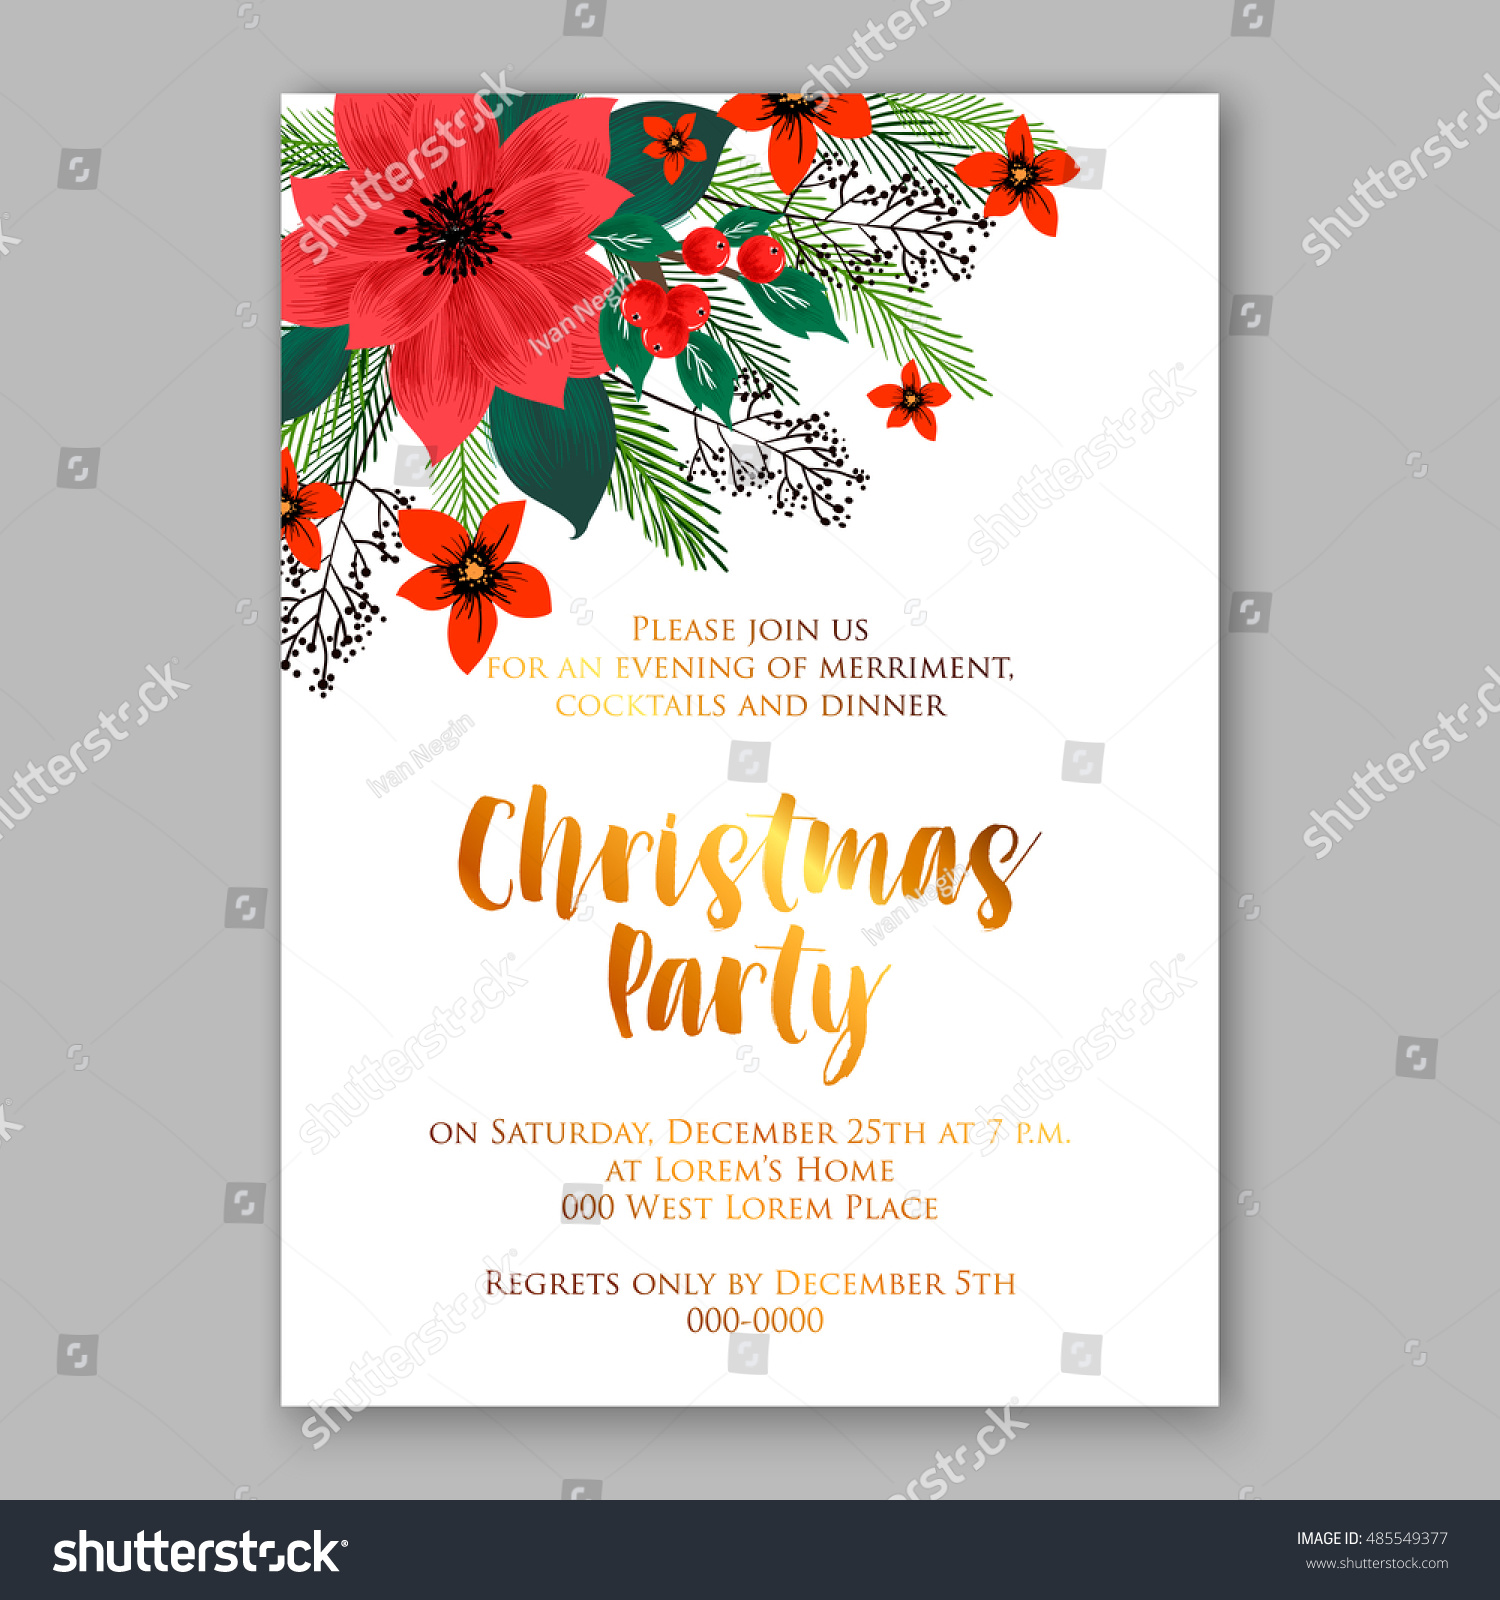 Christmas Party Invitation Template Poinsettia Flowers Stock Vector ...